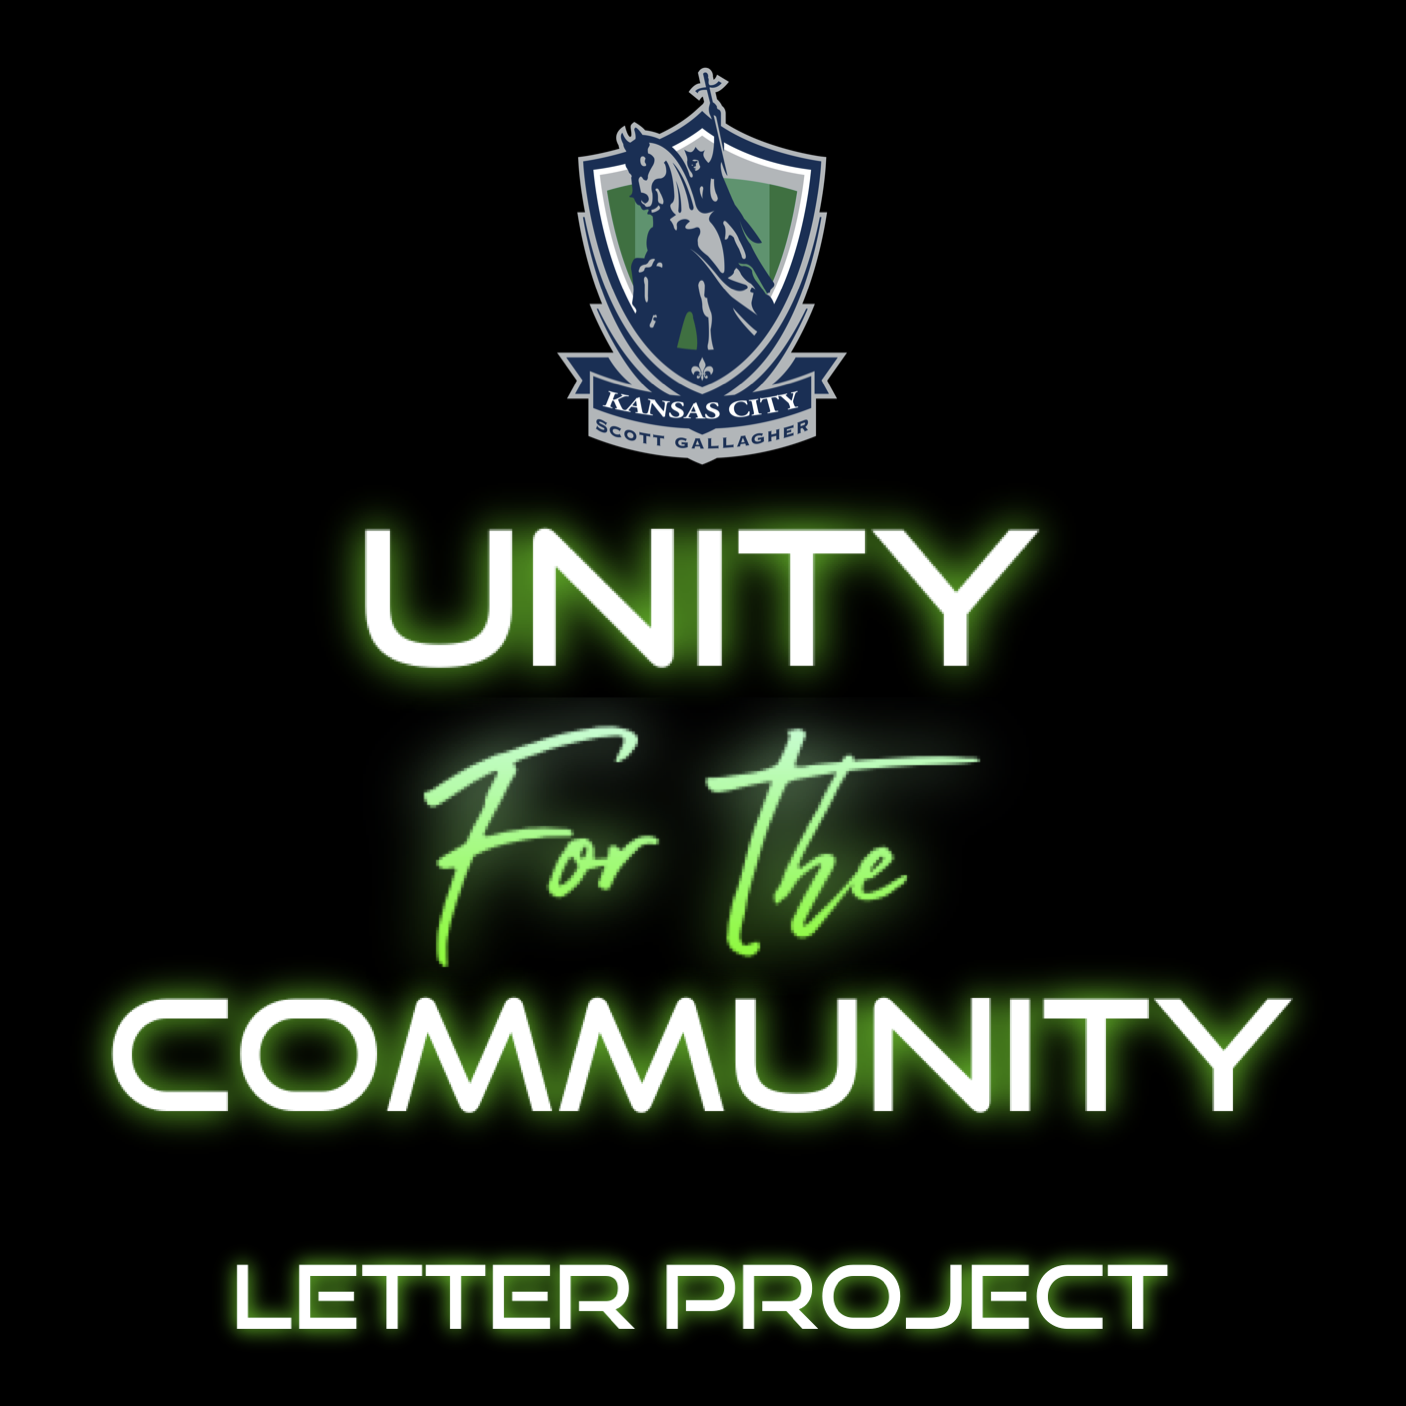 Unity for the Community